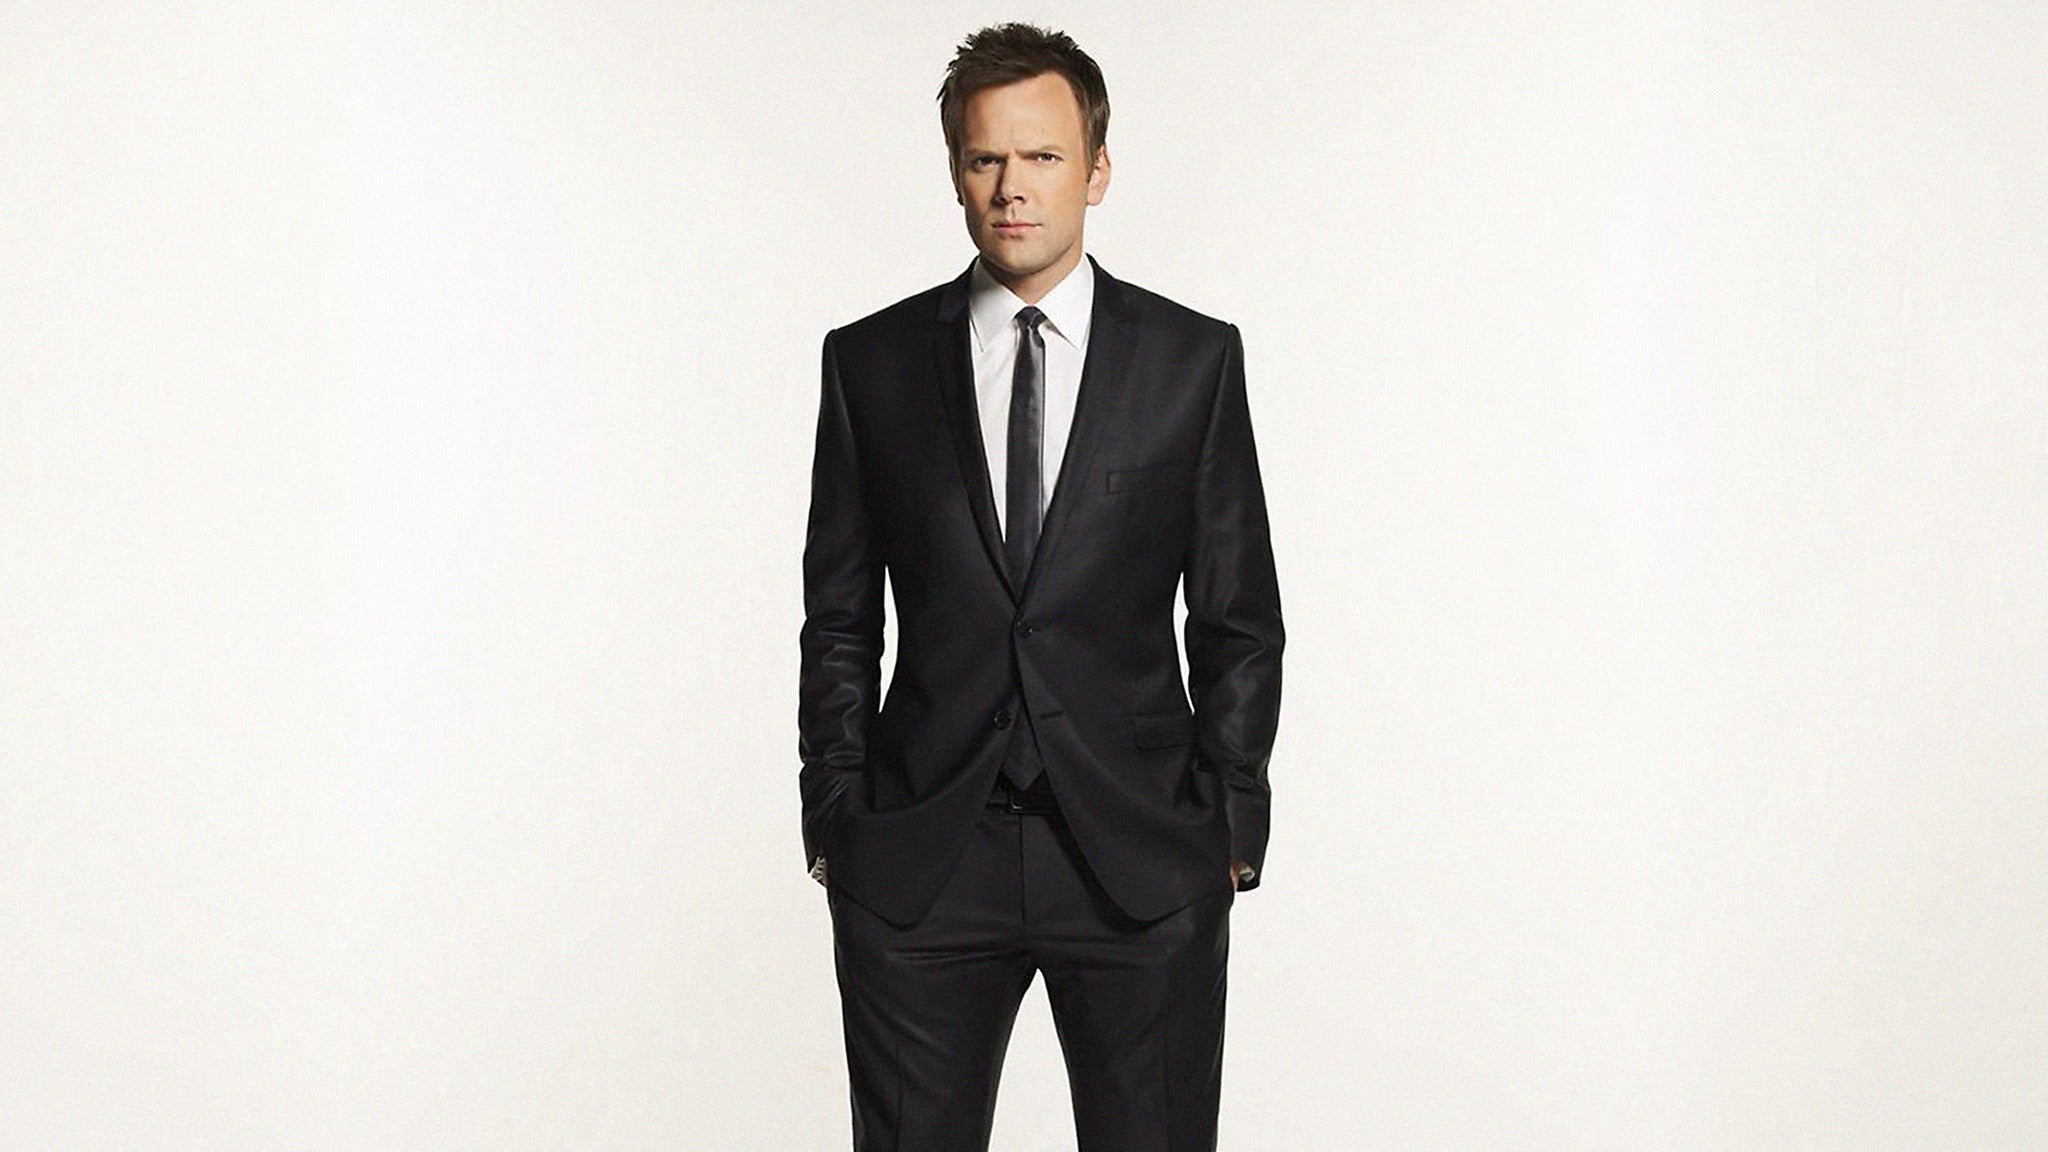 Joel McHale at The Event Center at Hollywood Casino